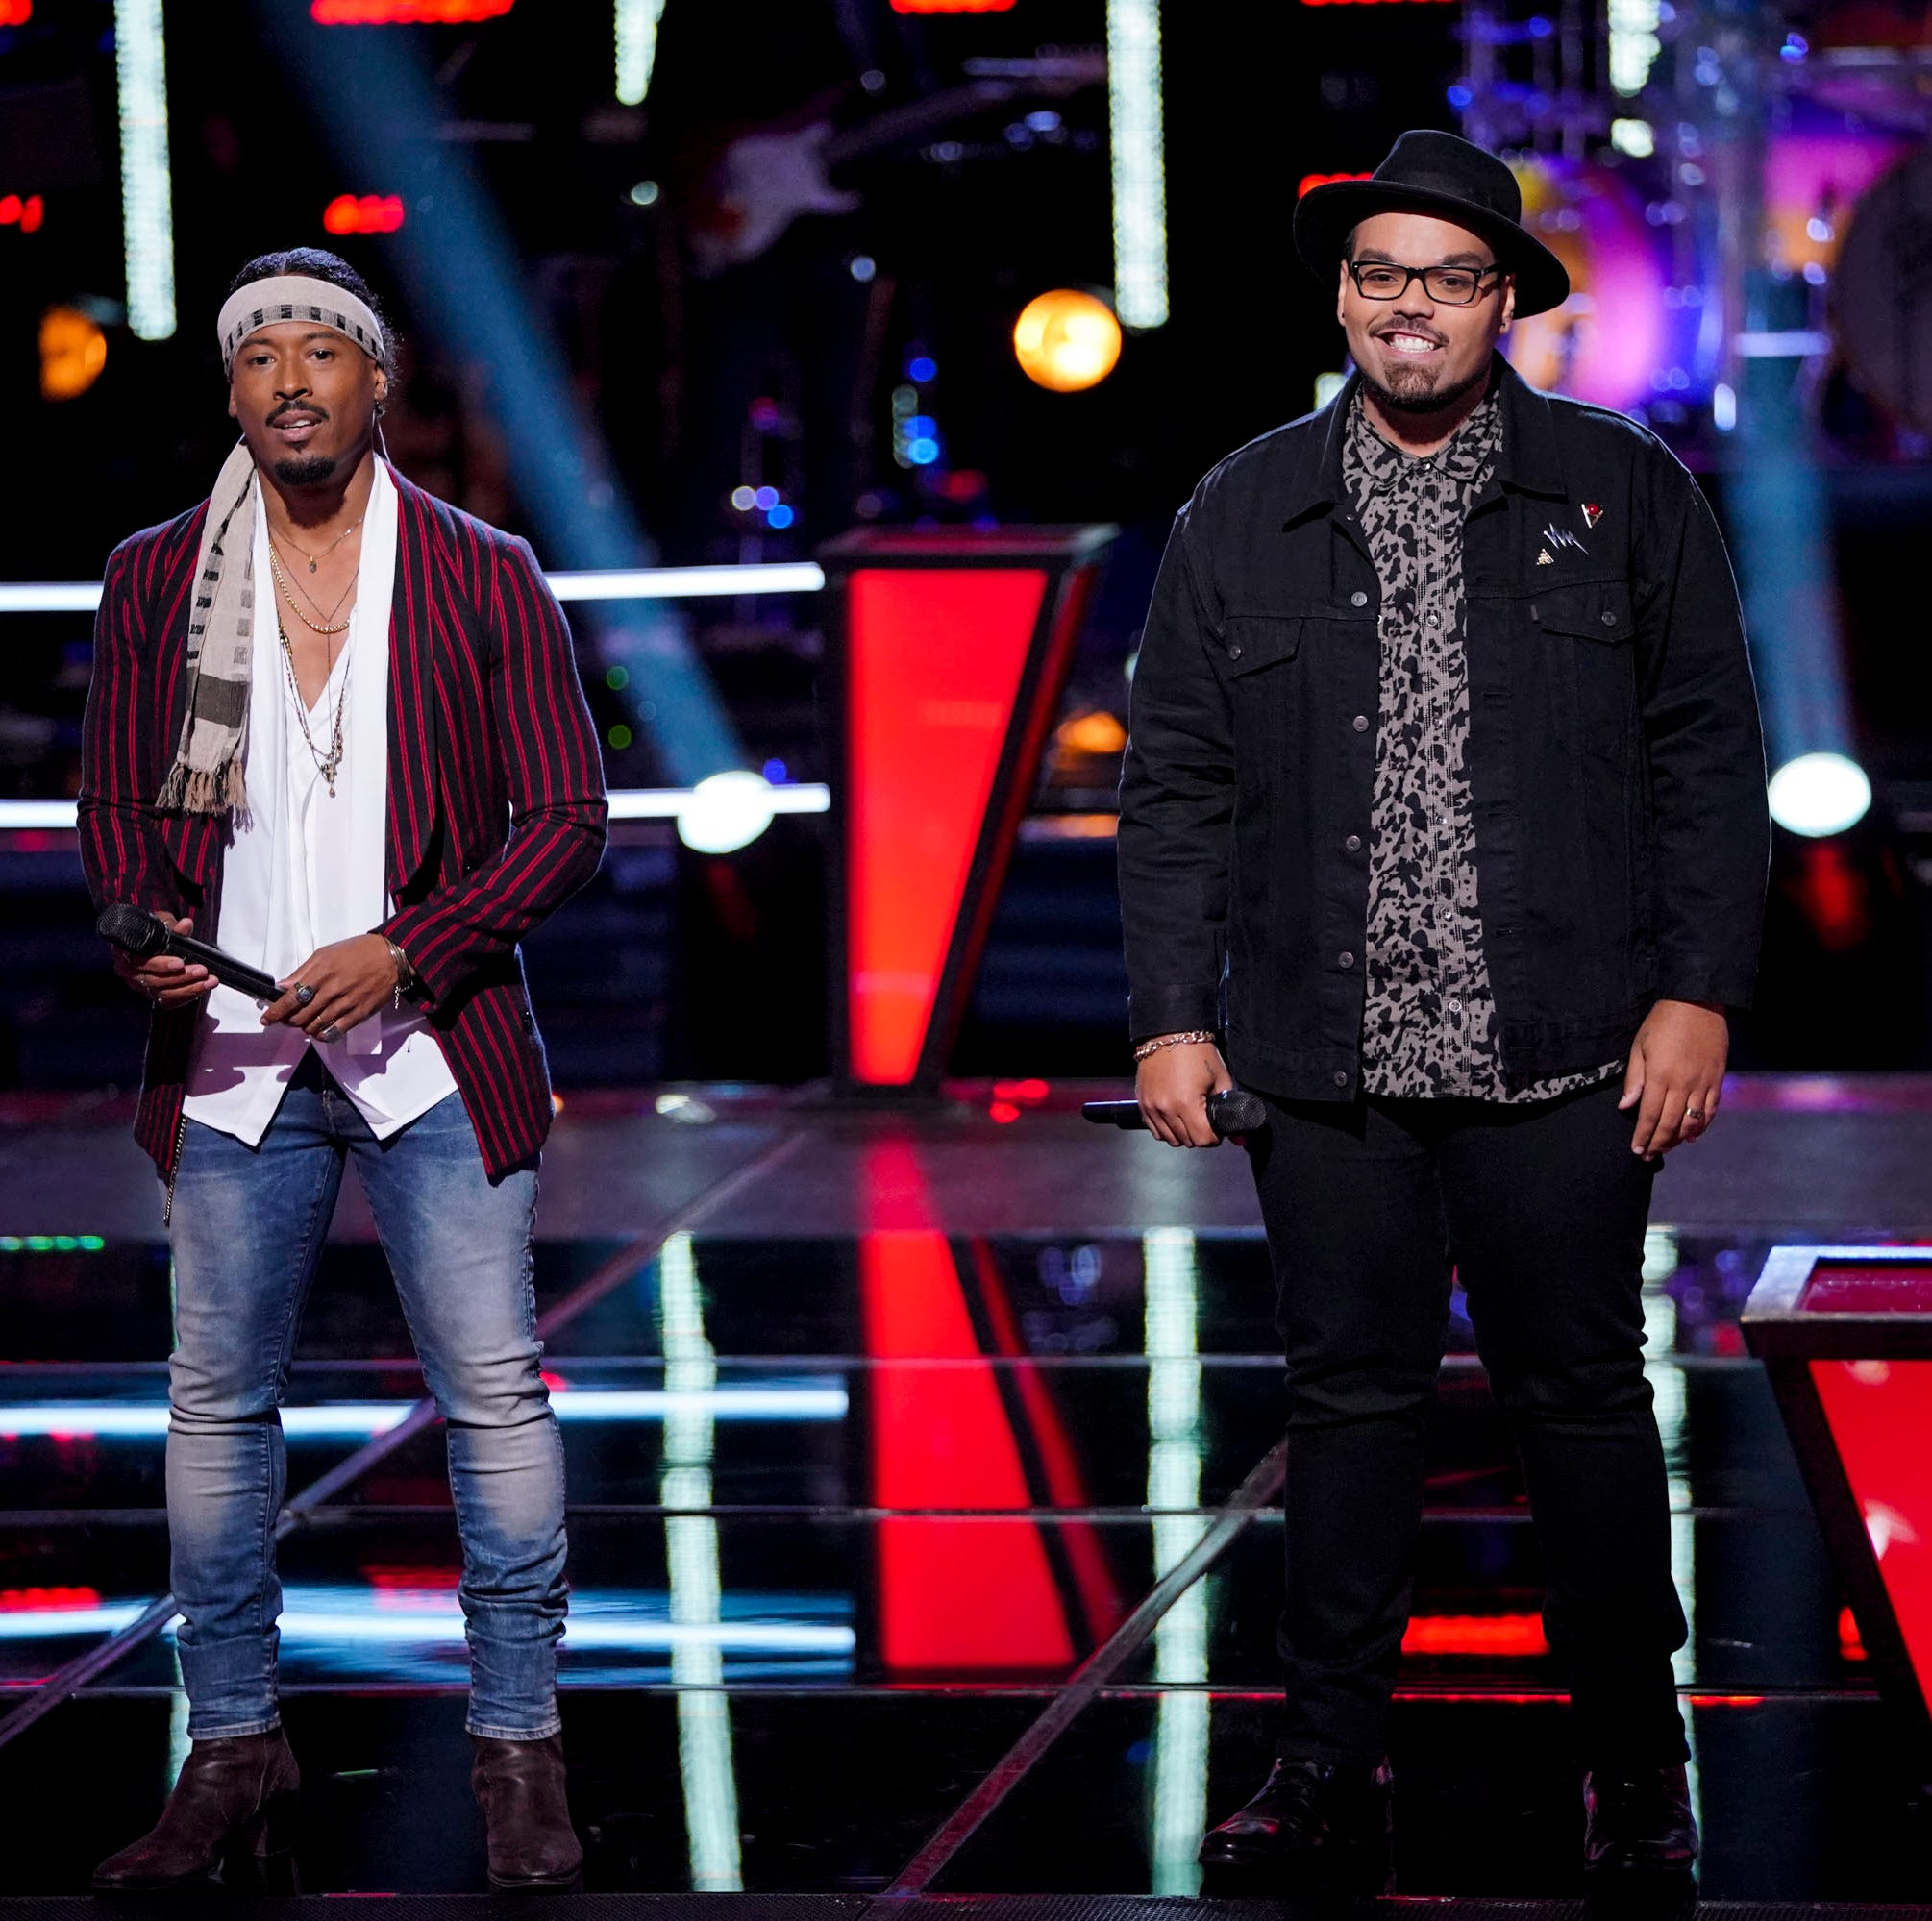 Fishersville's Matt Johnson doesn't advance in Battle Rounds on 'The Voice'